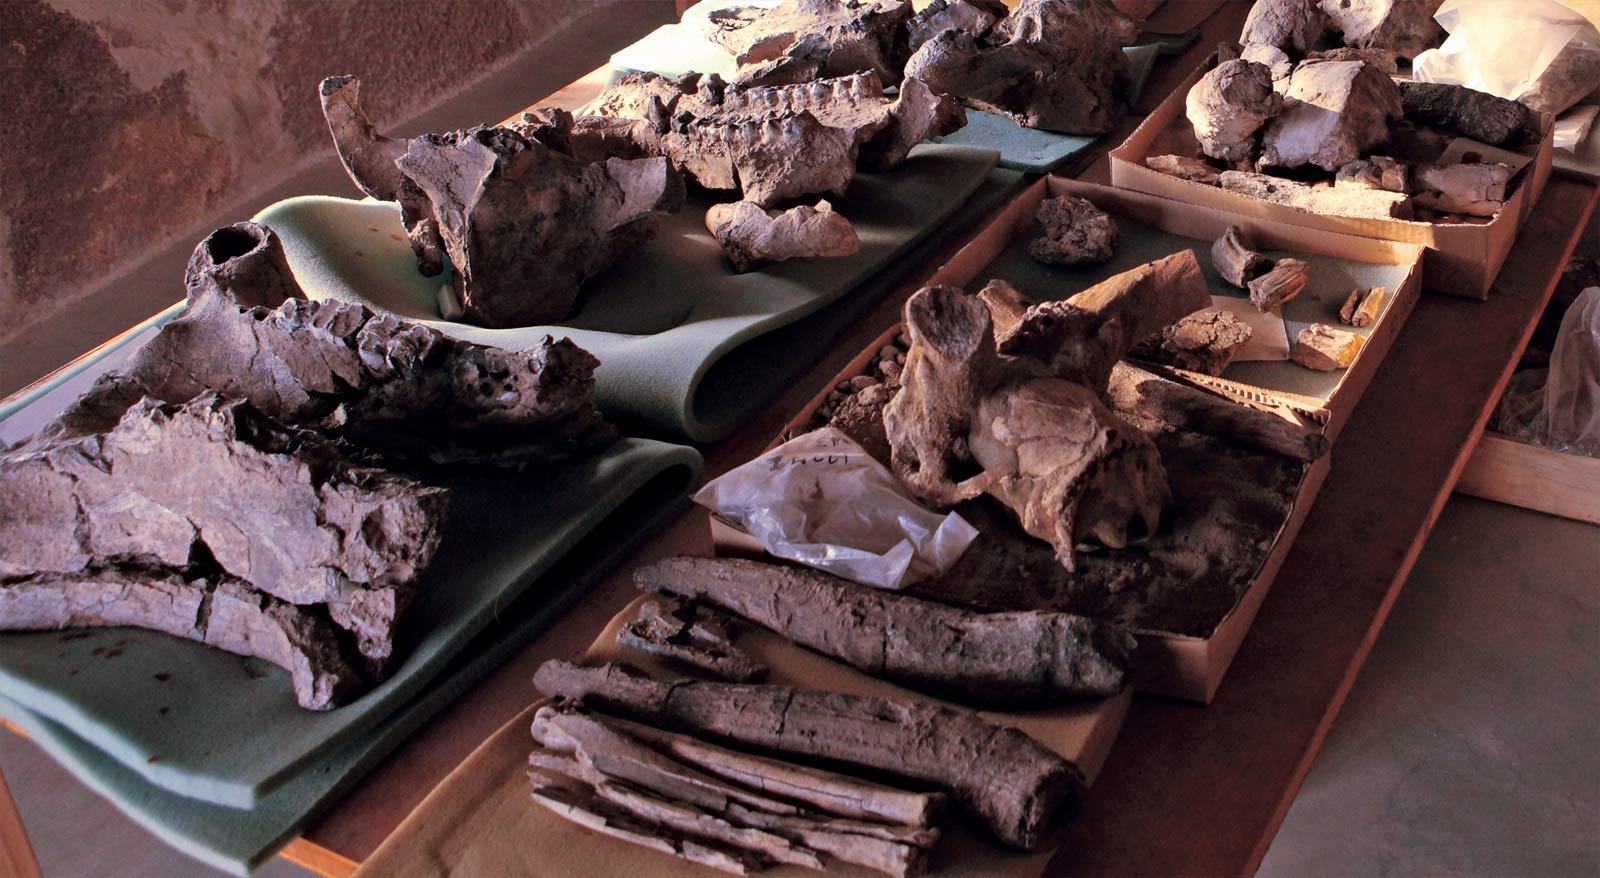 Recovered fossils await preparation and cataloging at the Turkana Basin Institute in Ileret.